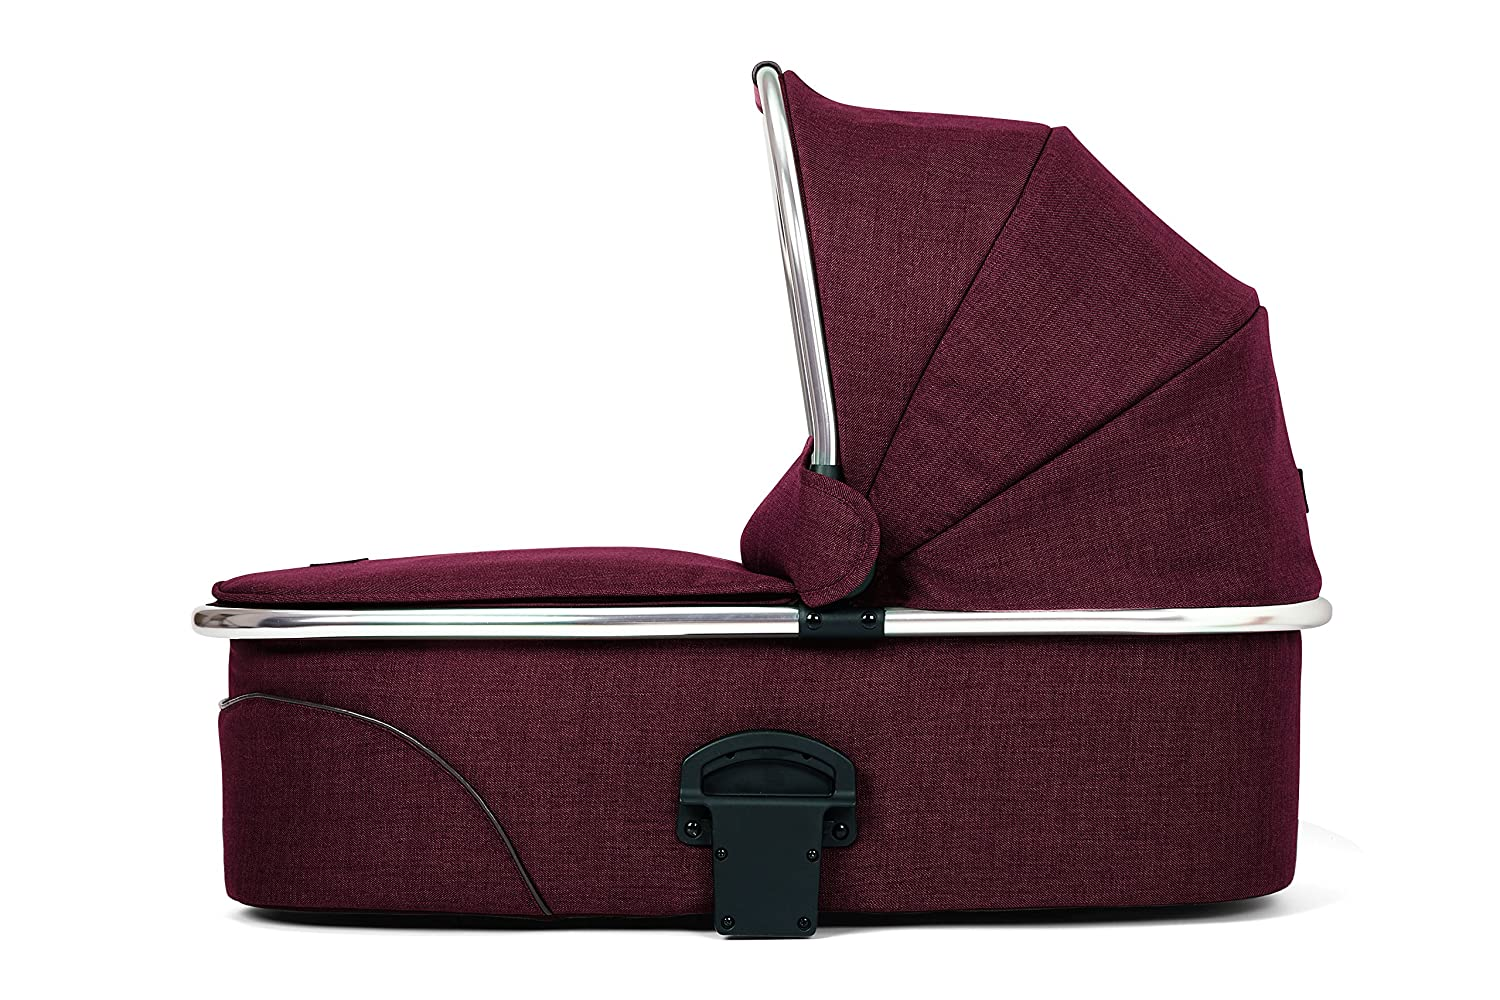 Mamas & Papas 2015 Urbo2 Carrycot Chrome - Rust